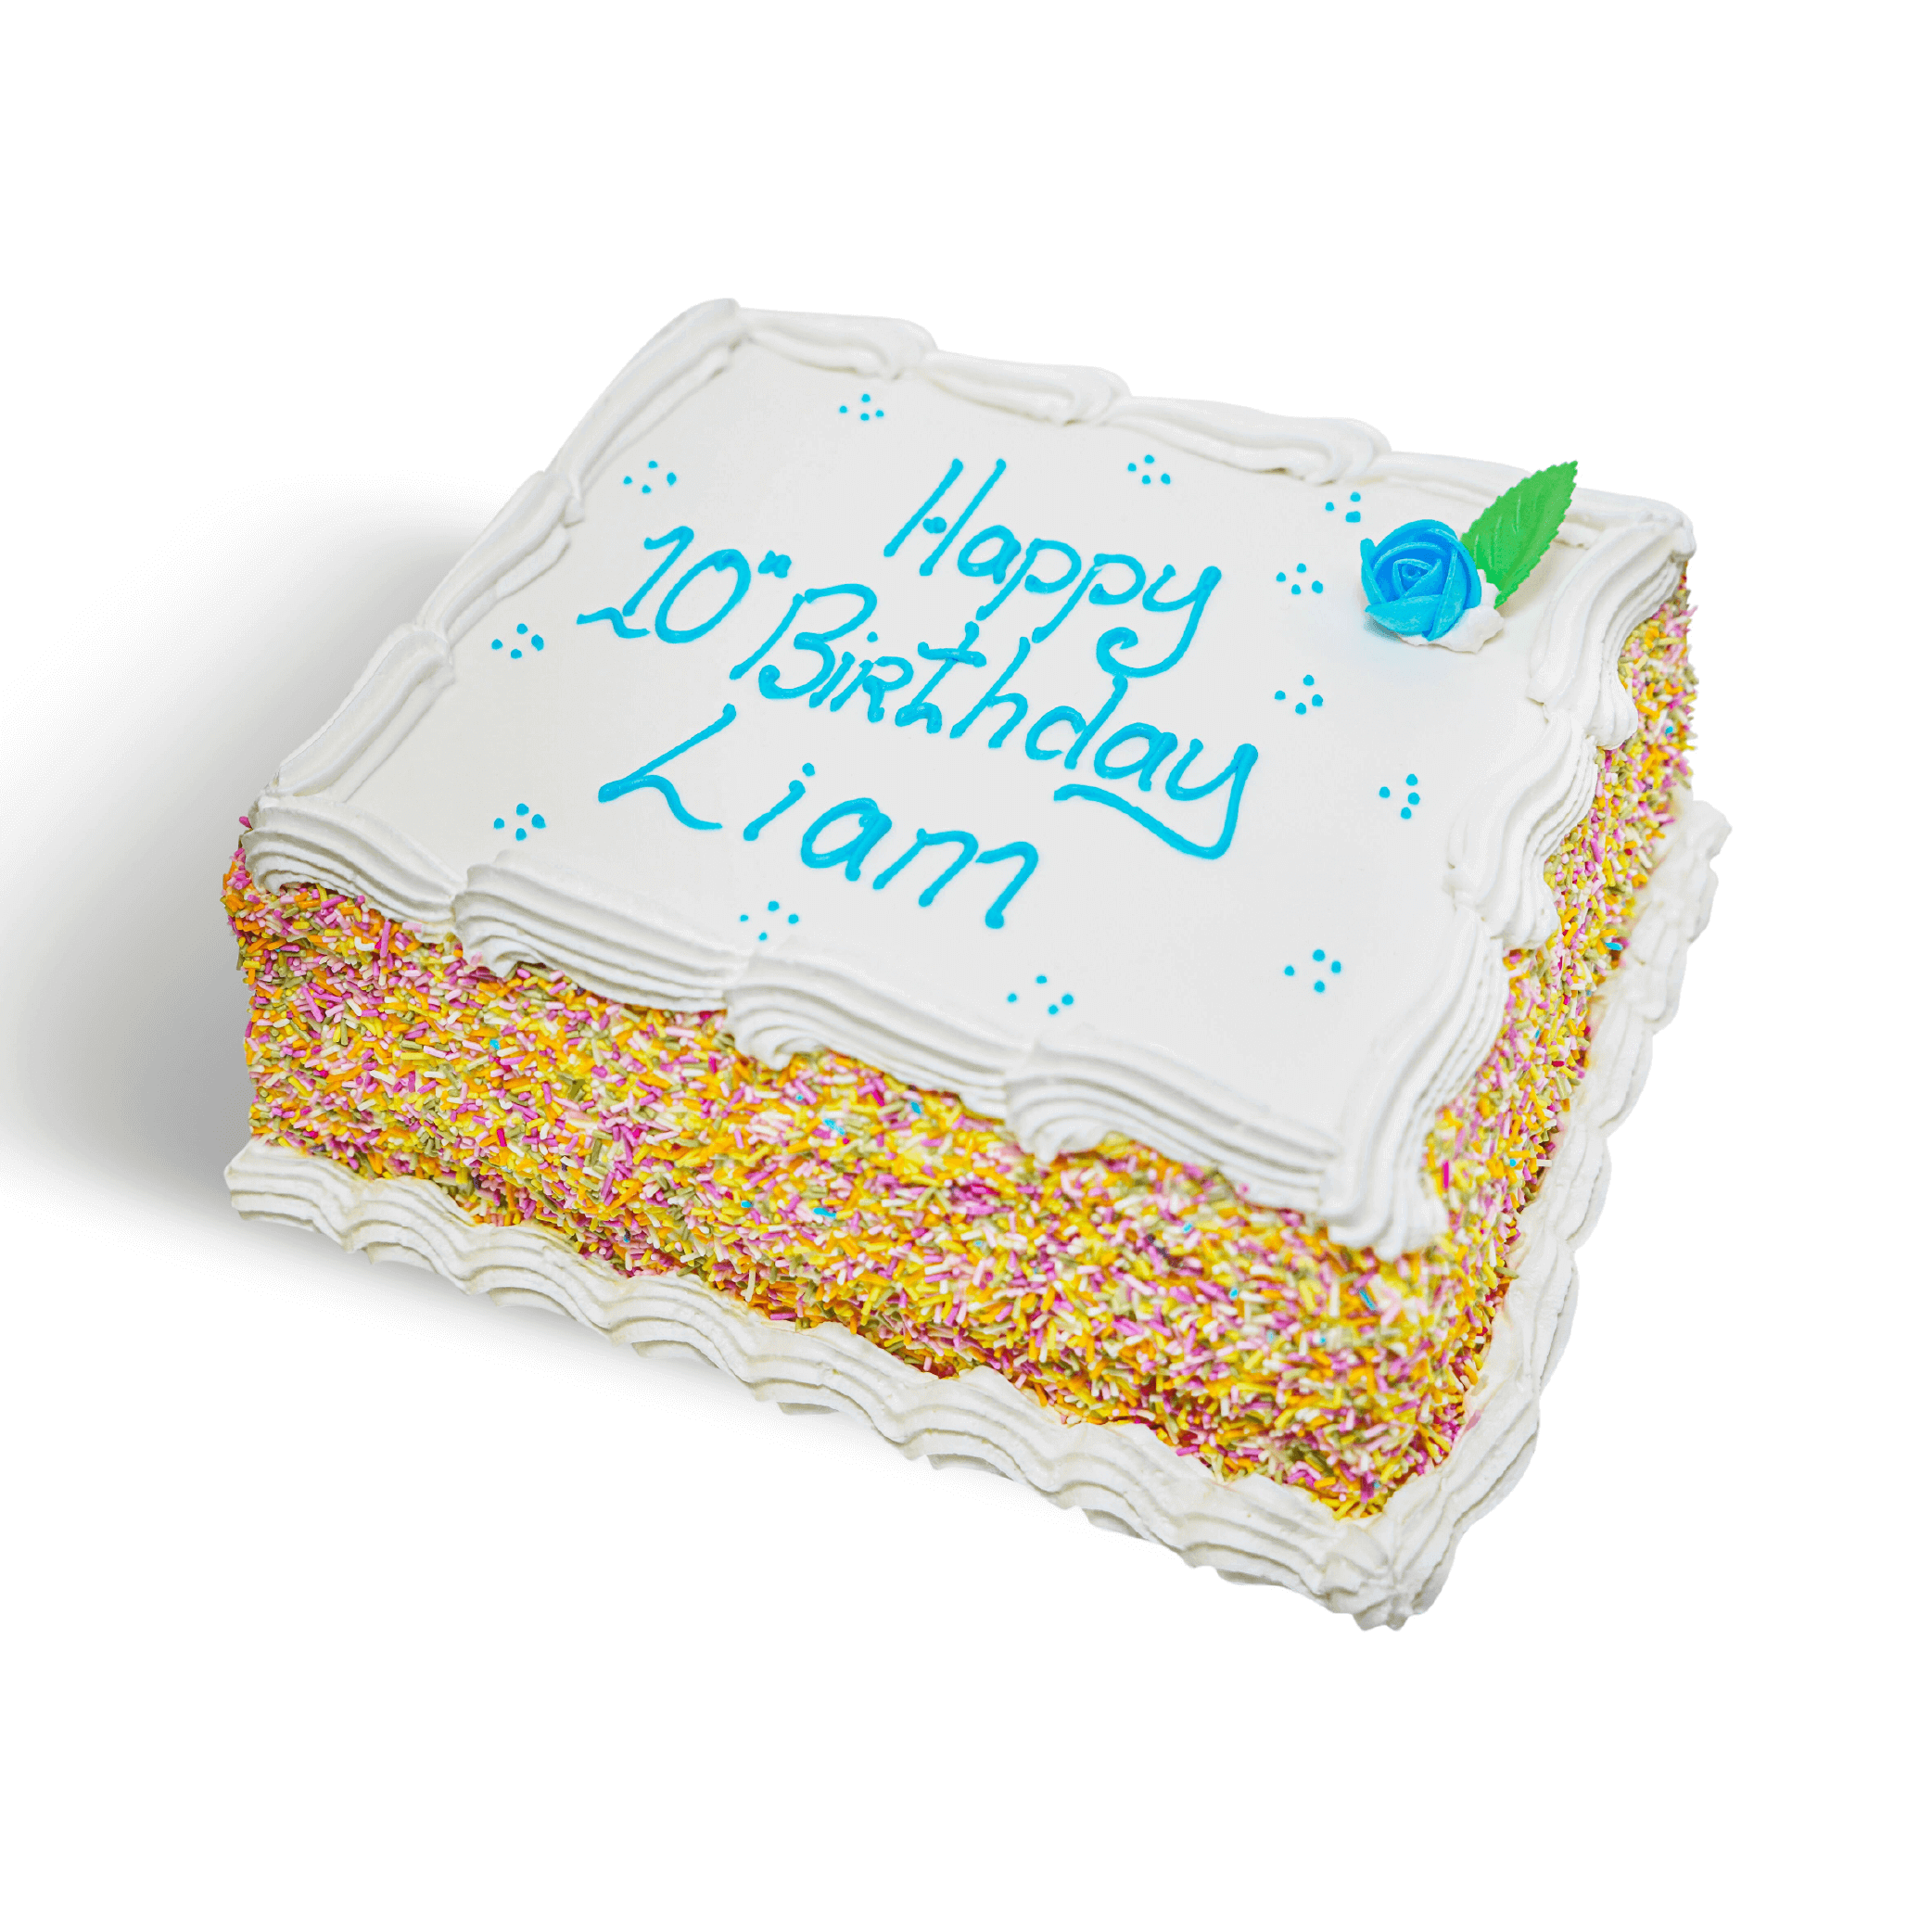 A white birthday cake with blue writing and coloured sprinkles